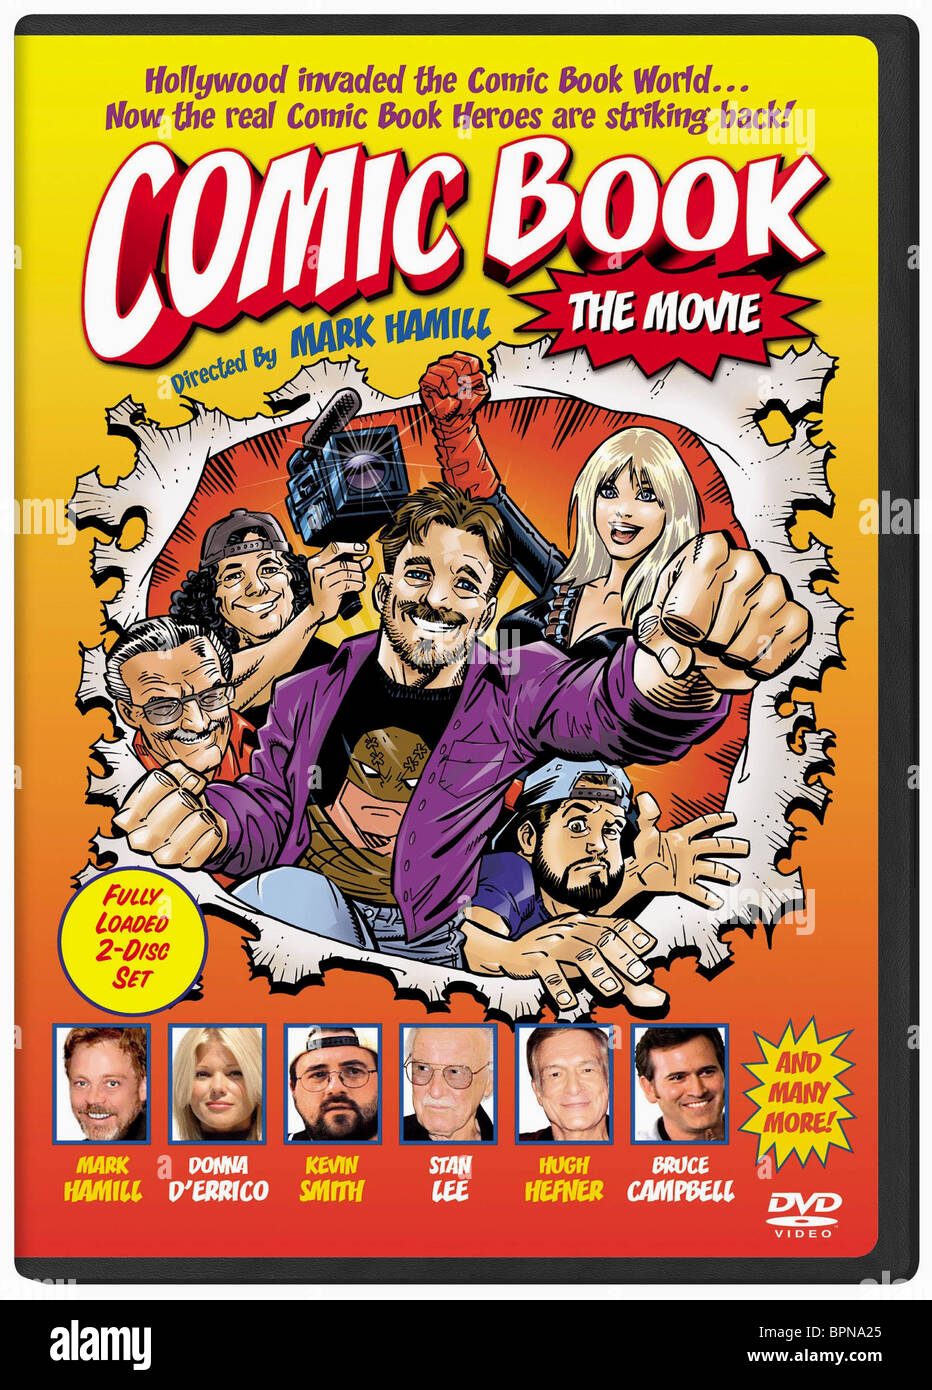 MOVIE POSTER COMIC BOOK: THE MOVIE (2004) - Stock Image